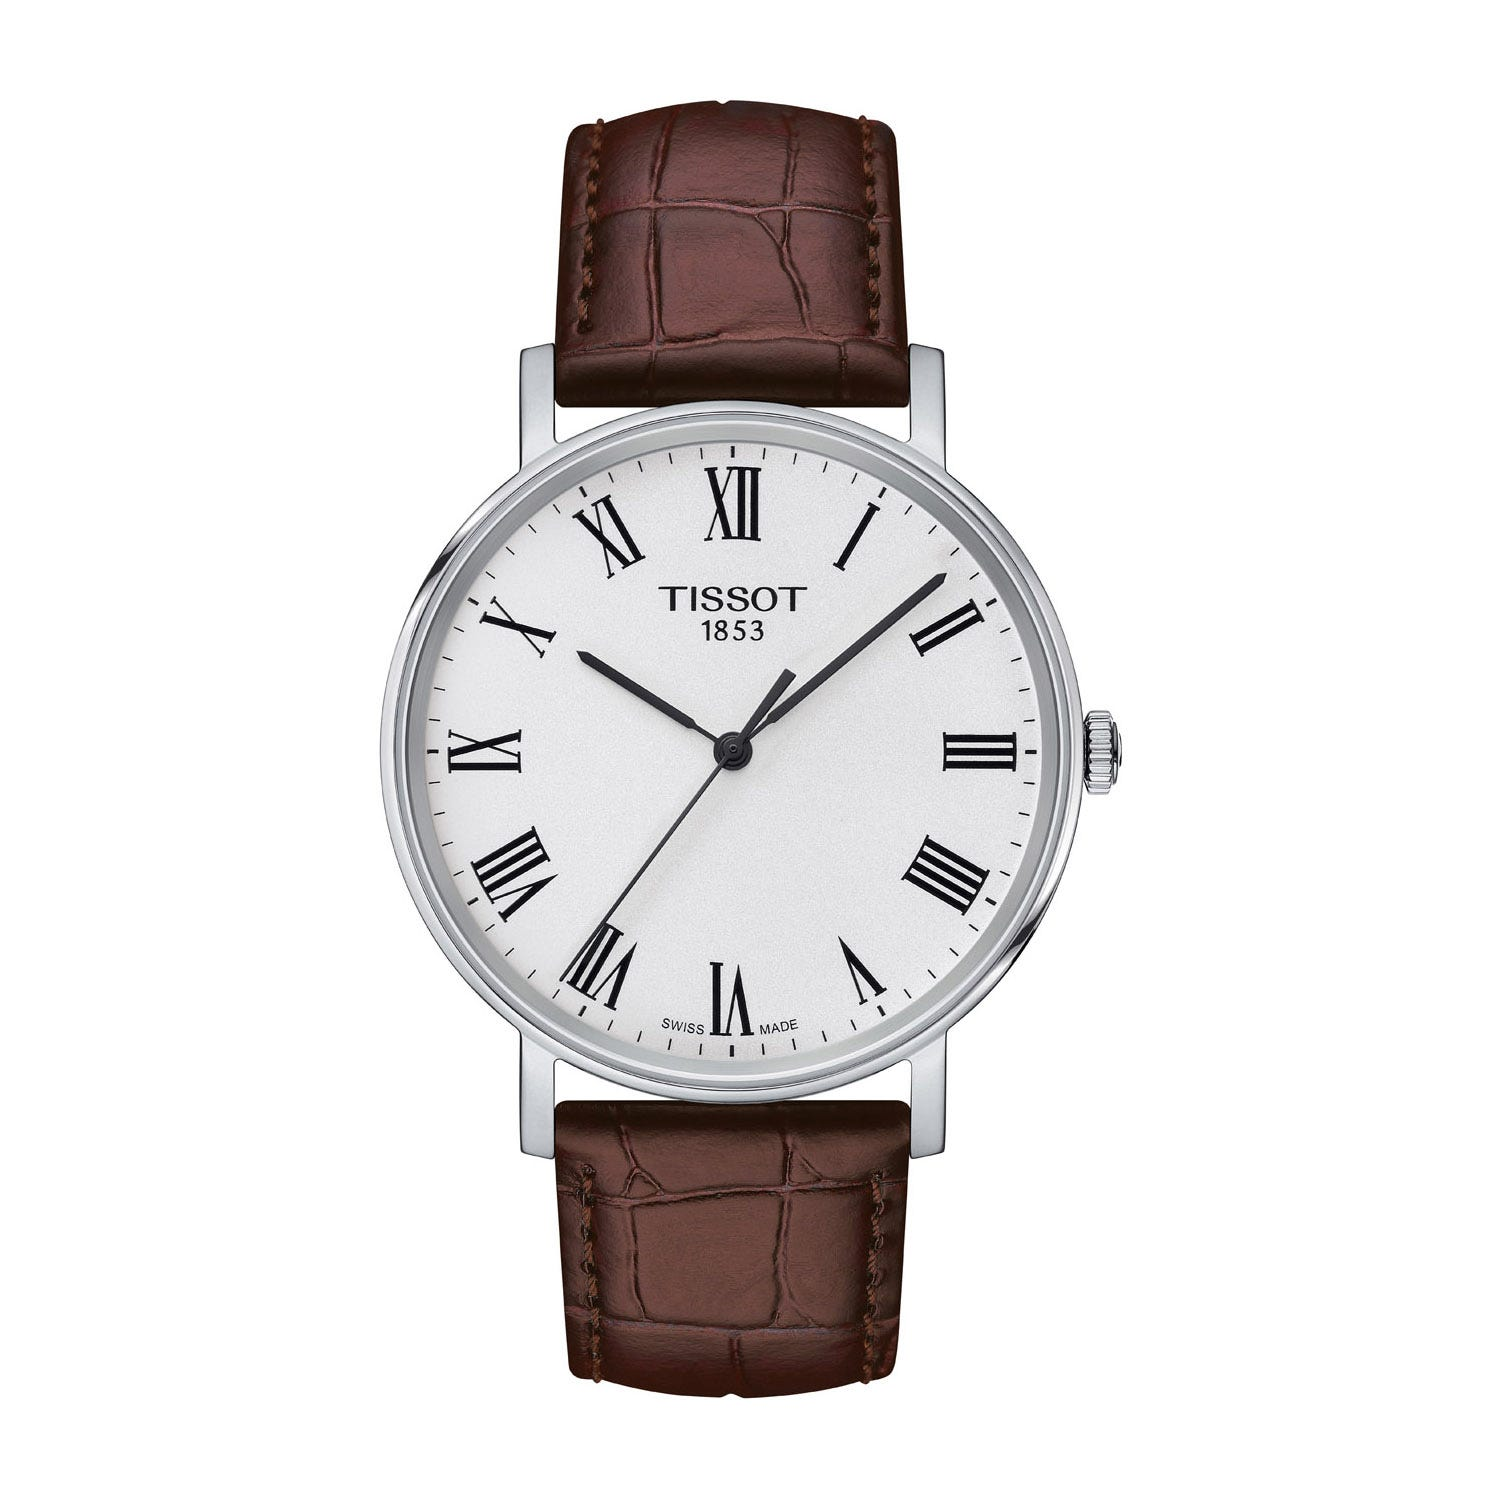 Tissot T-Classic Everytime Medium Brown Leather Men's Watch